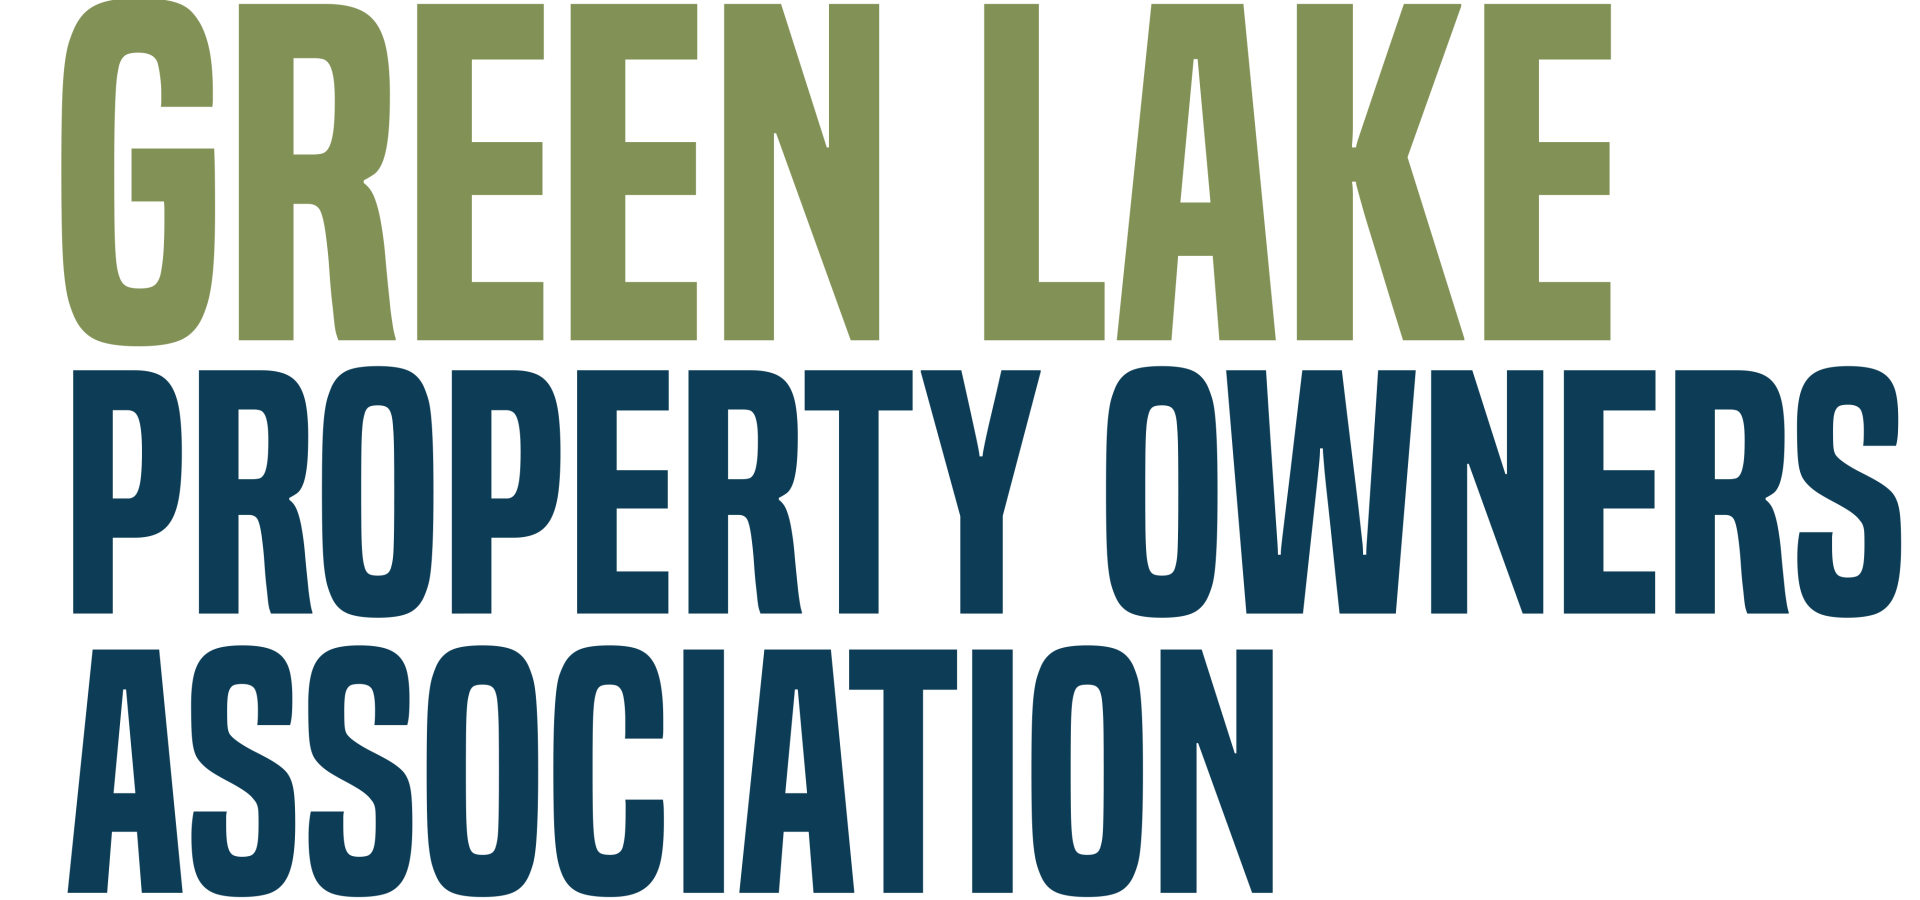 Green Lake Property Owners Association